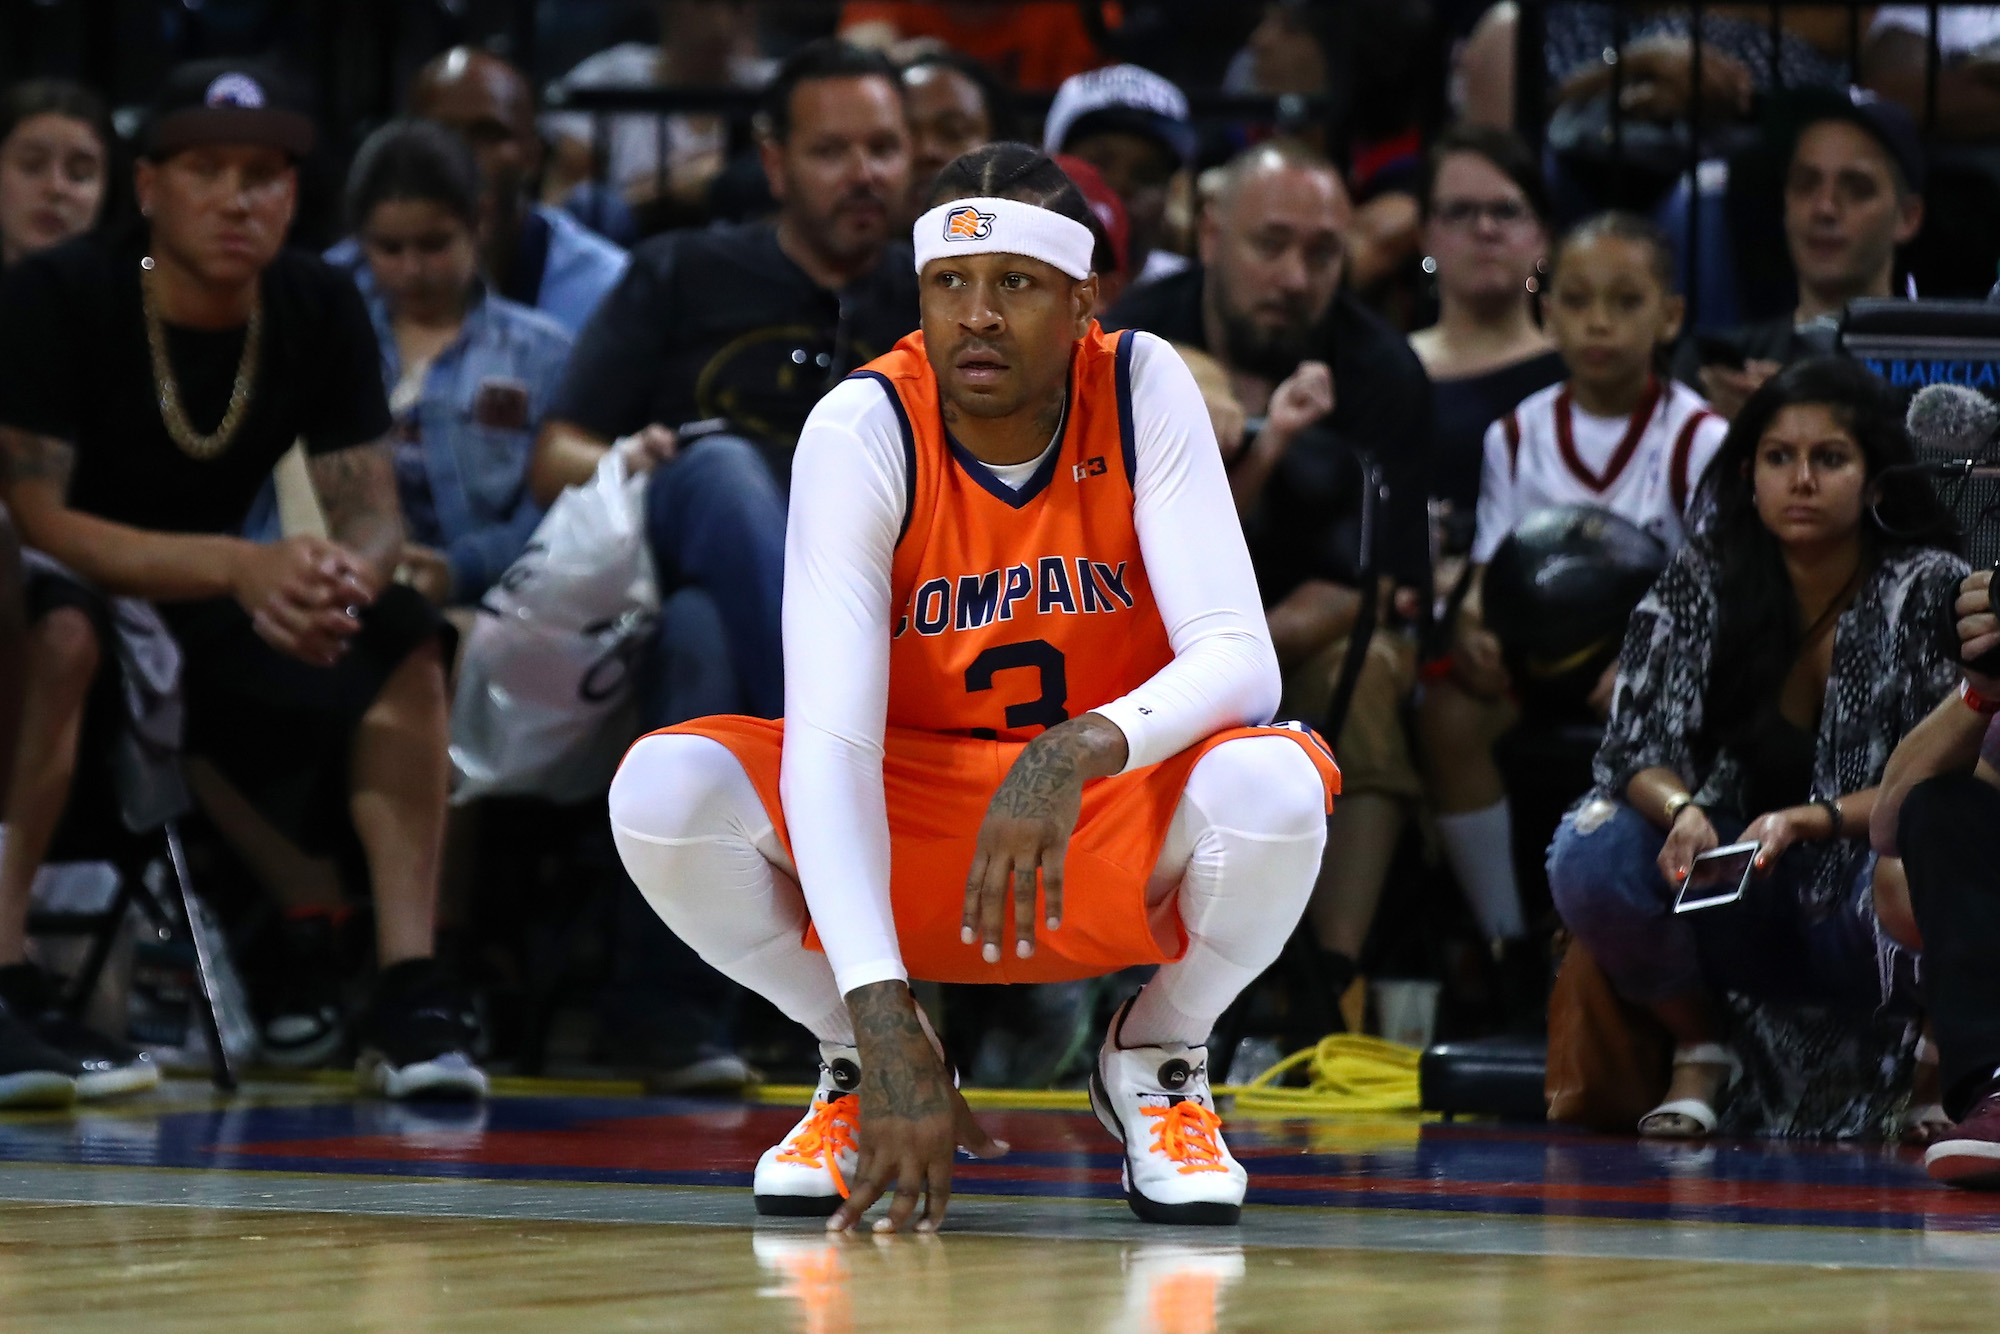 Injuries, Bad Allen Iverson Make For Disappointing BIG 3 Opening Day (VIDEOS) | Total Pro Sports